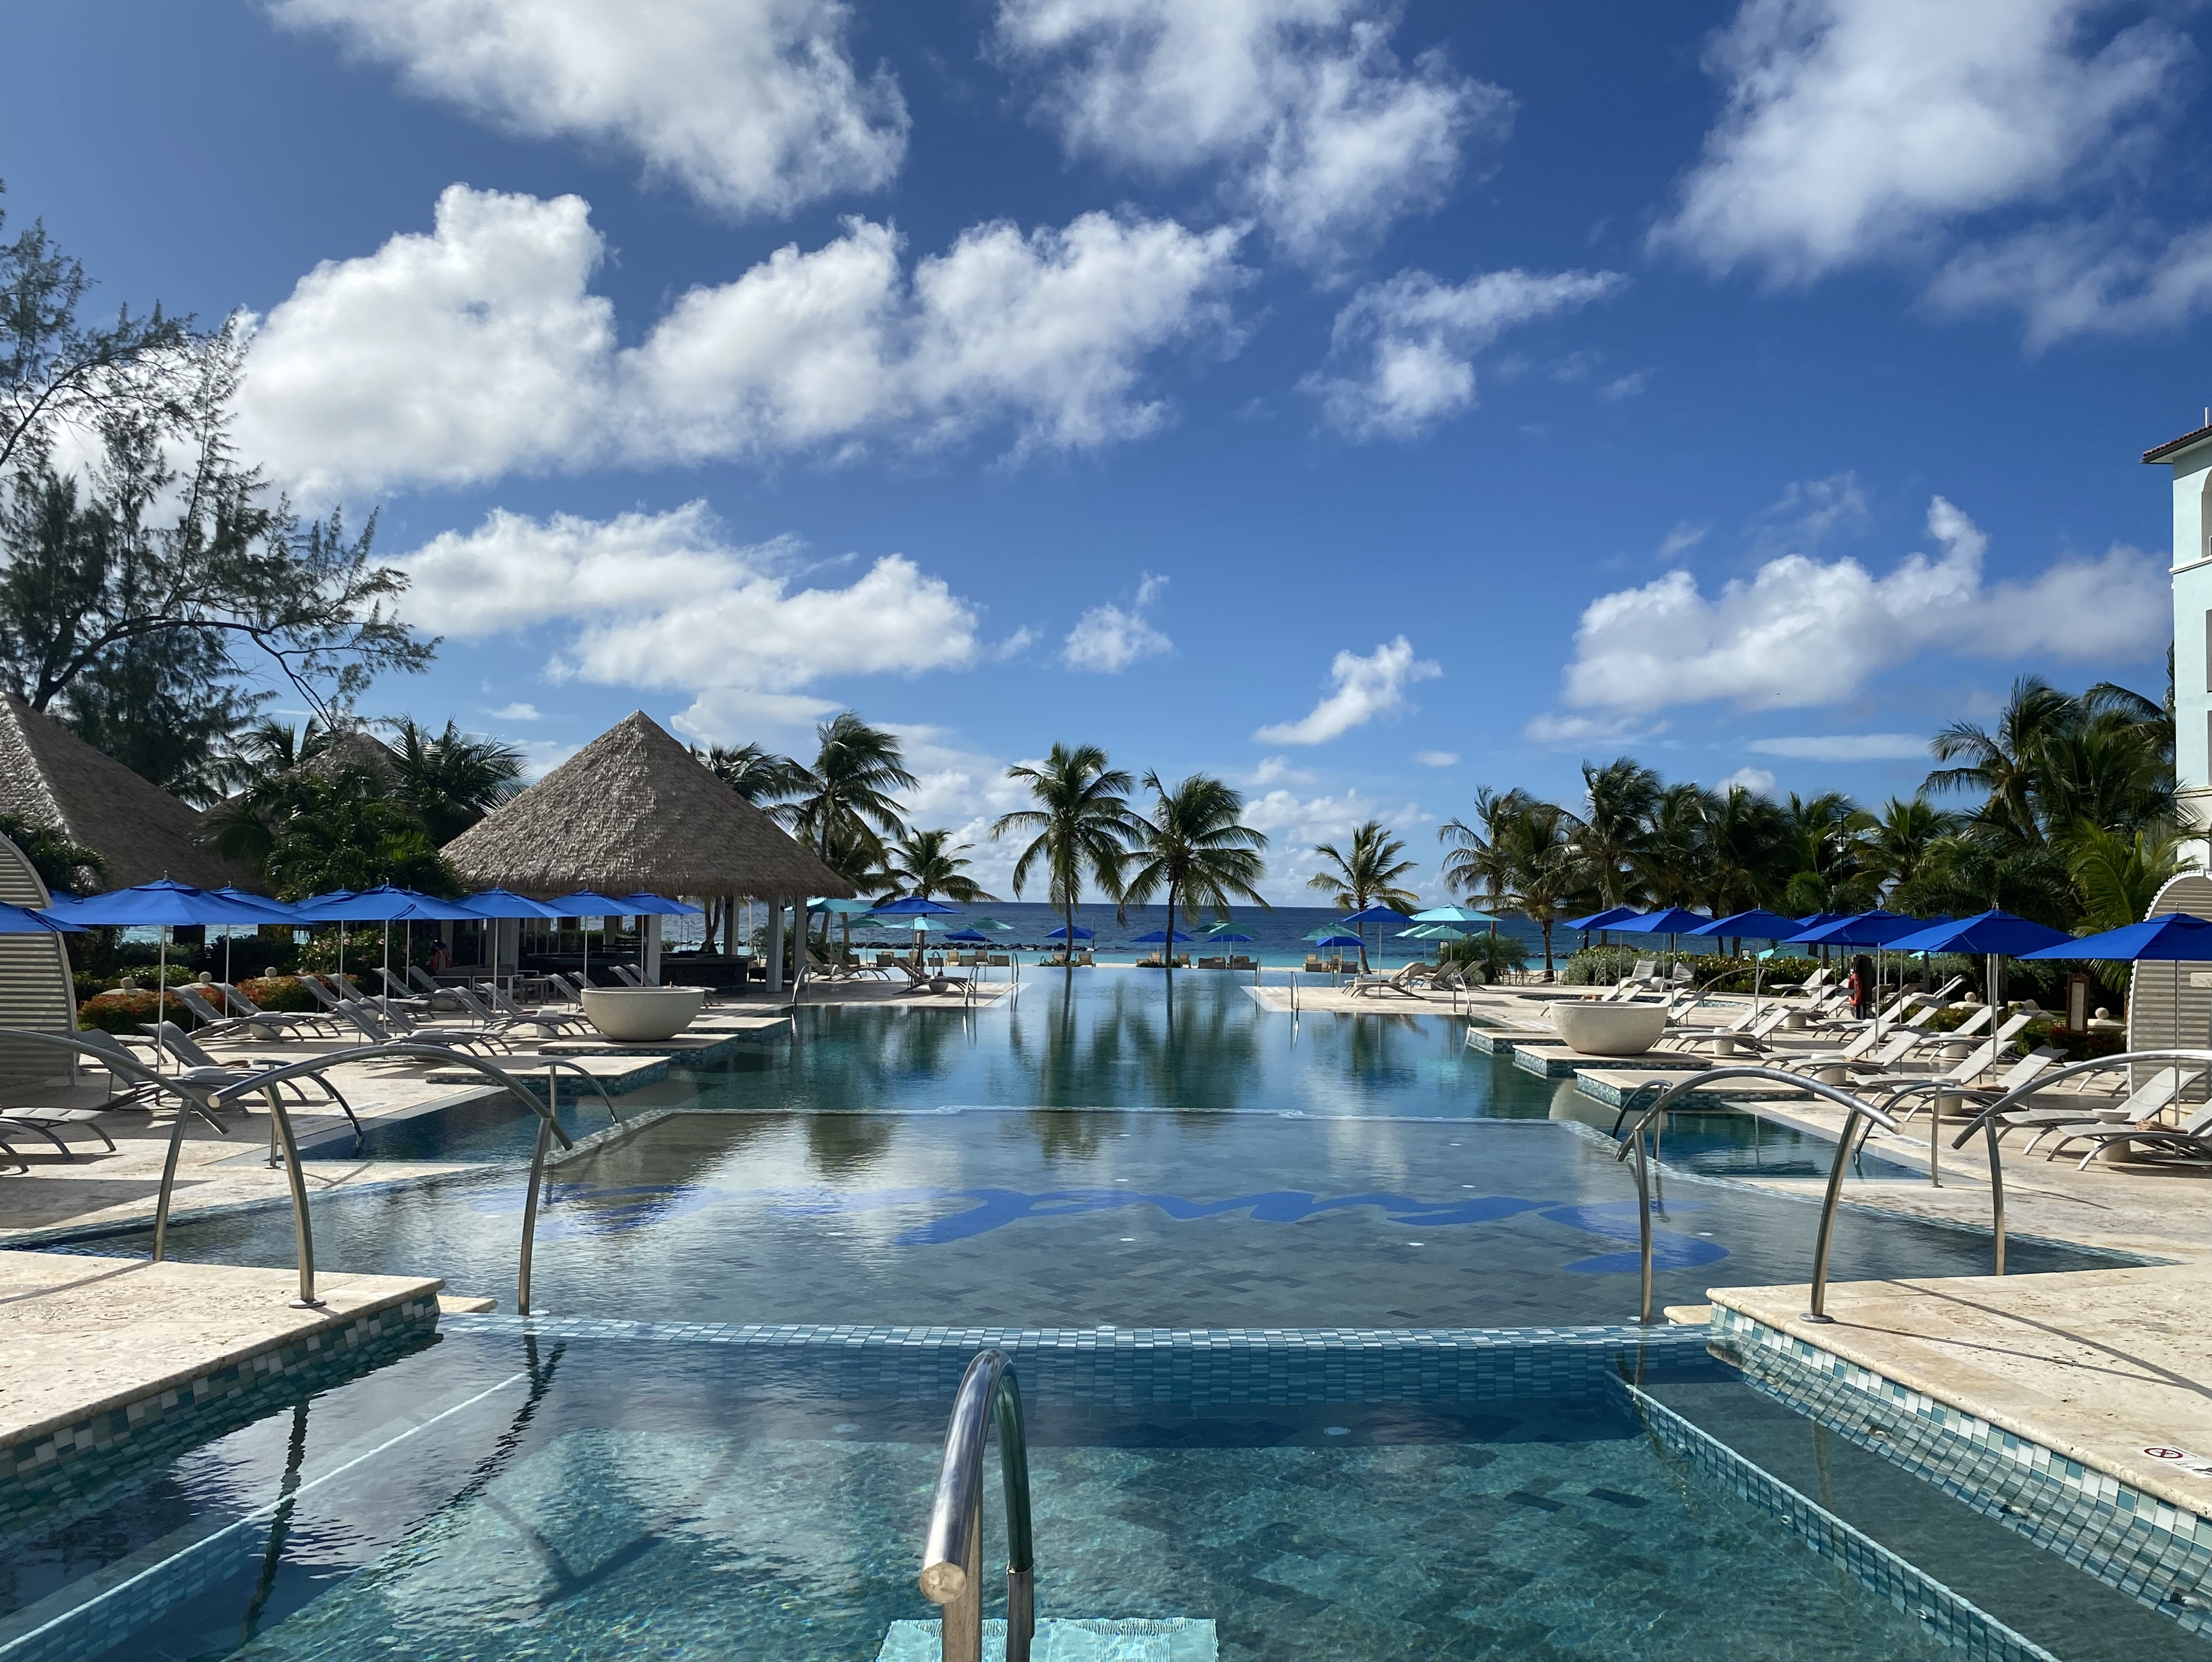 Travelling During the Pandemic: Leah Marshall Reviews Sandals Royal Barbados